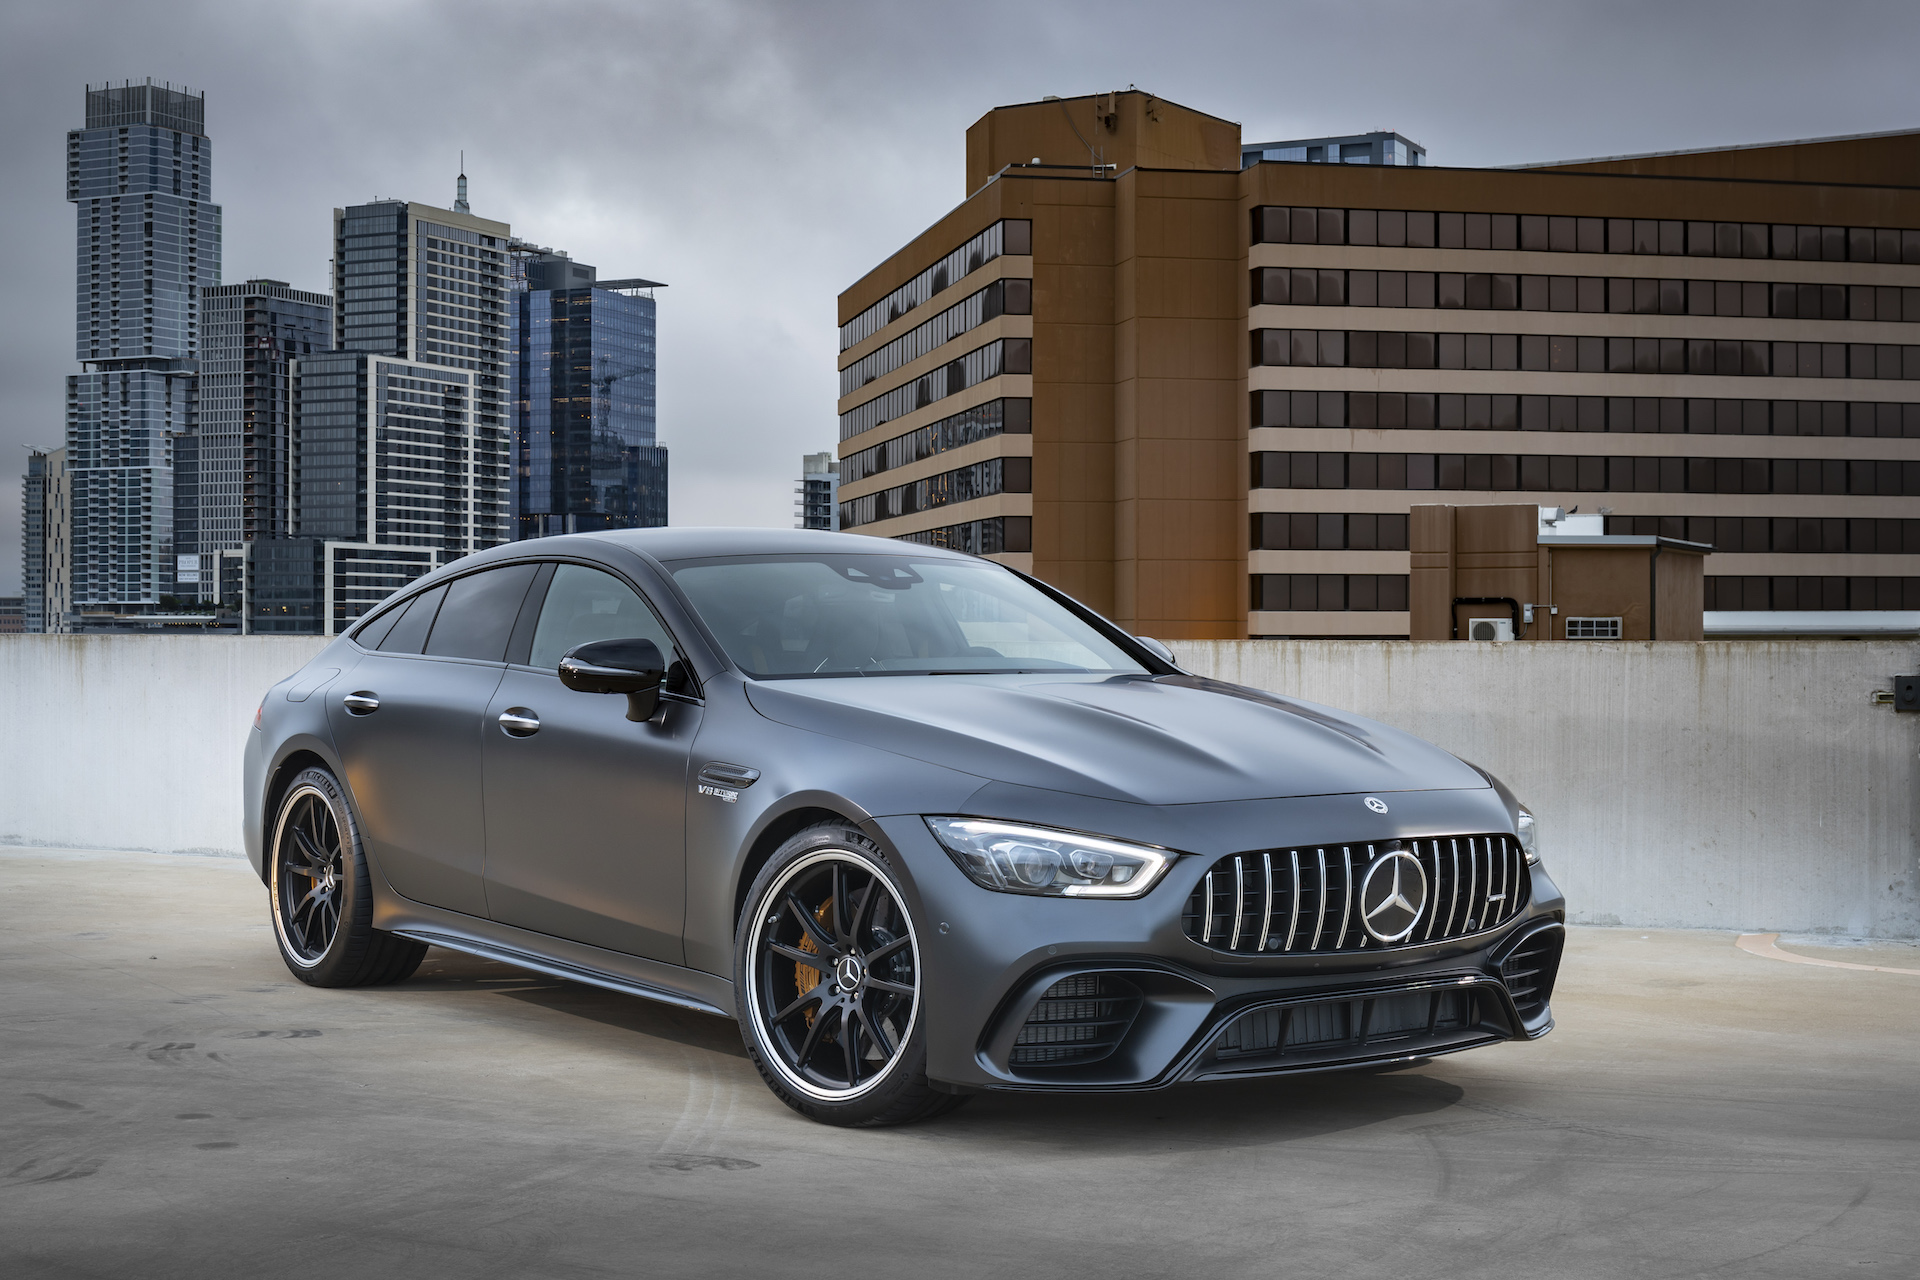 Mercedes-AMG GT 4-Door Coupe likely to spawn hybrid model ...